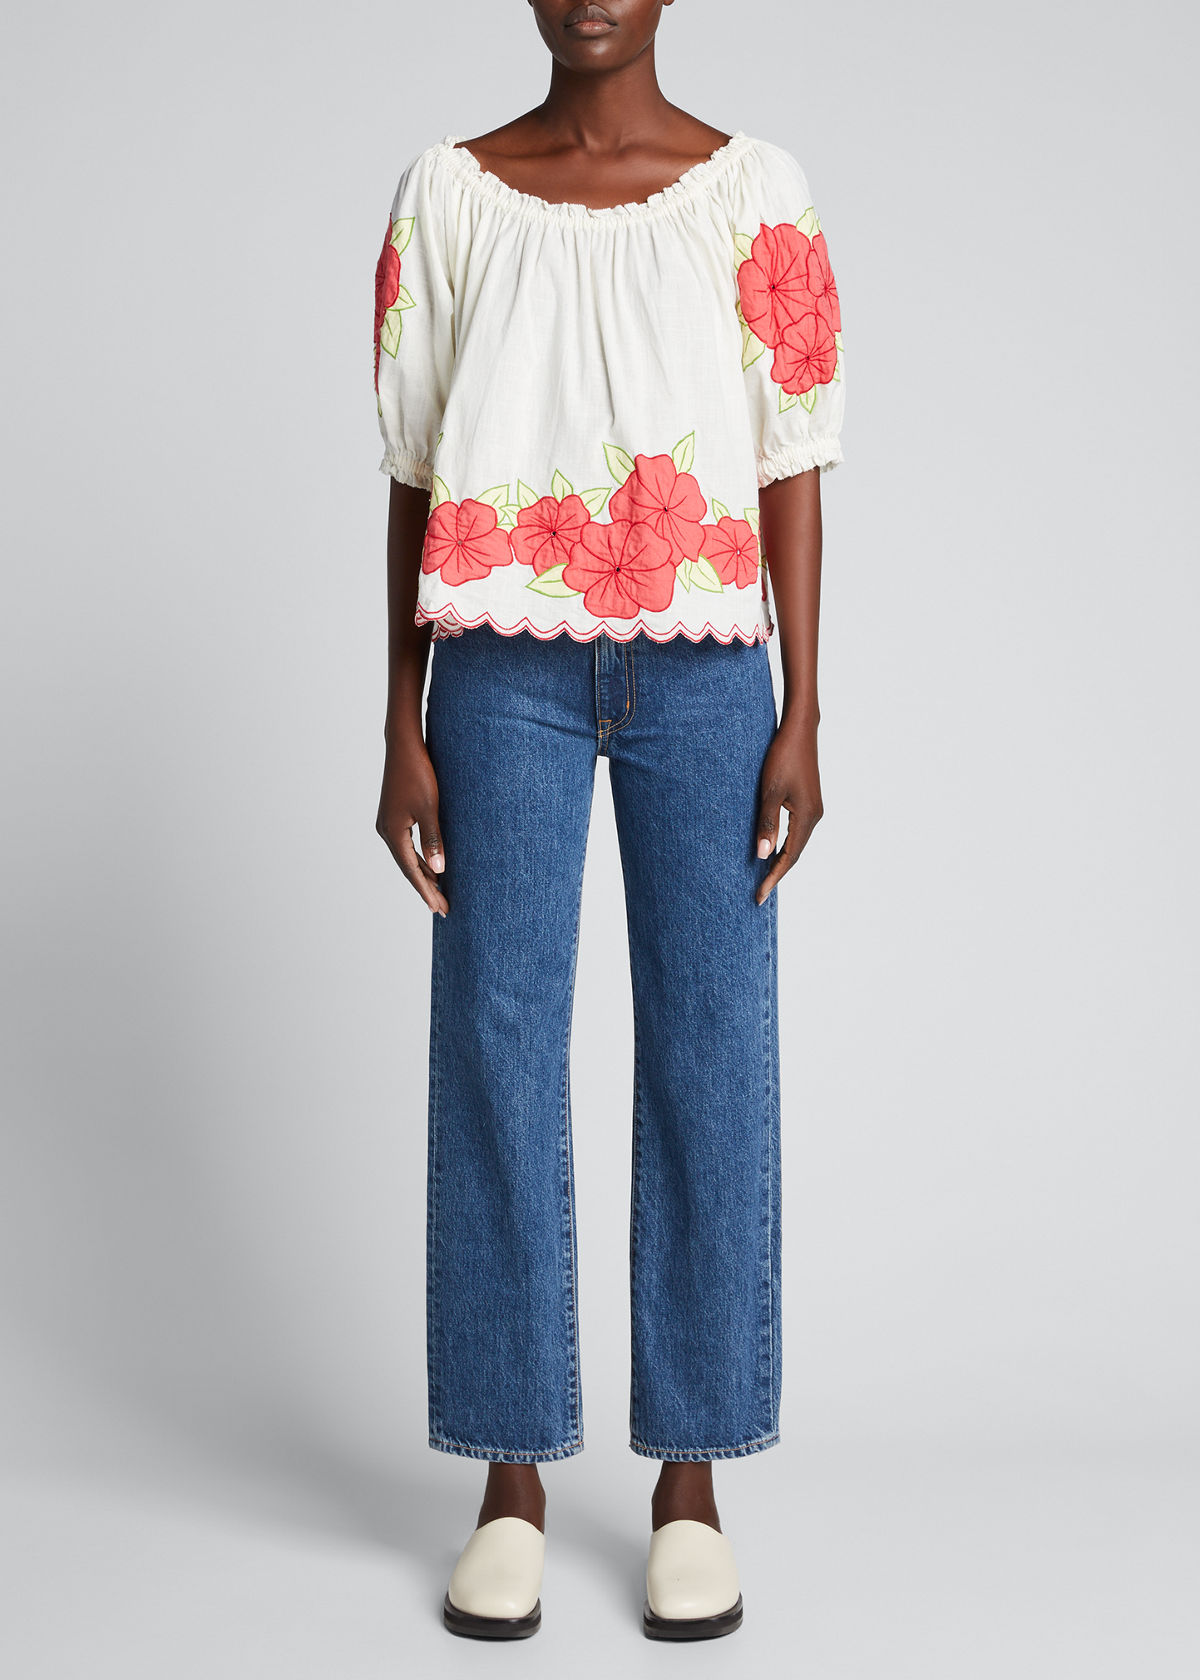 The Great The Applique Floral Garland Top In Cream Wred